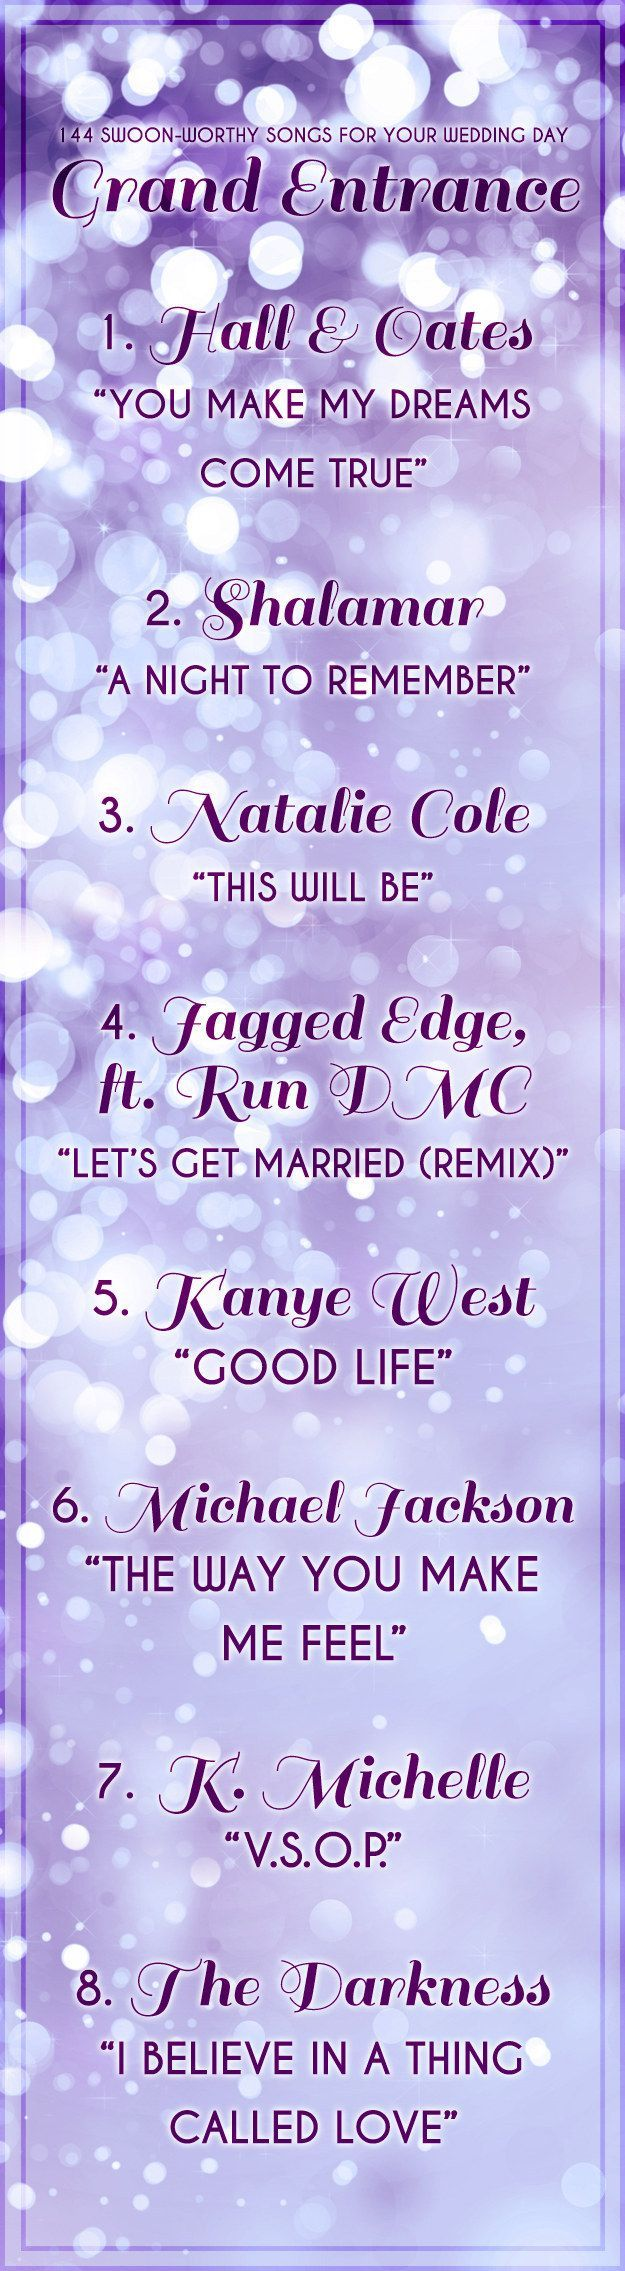 144 Swoon-Worthy Songs For Every Part Of Your Wedding Day, especially, Hall & Oates, Michael Jackson, and the Darkness